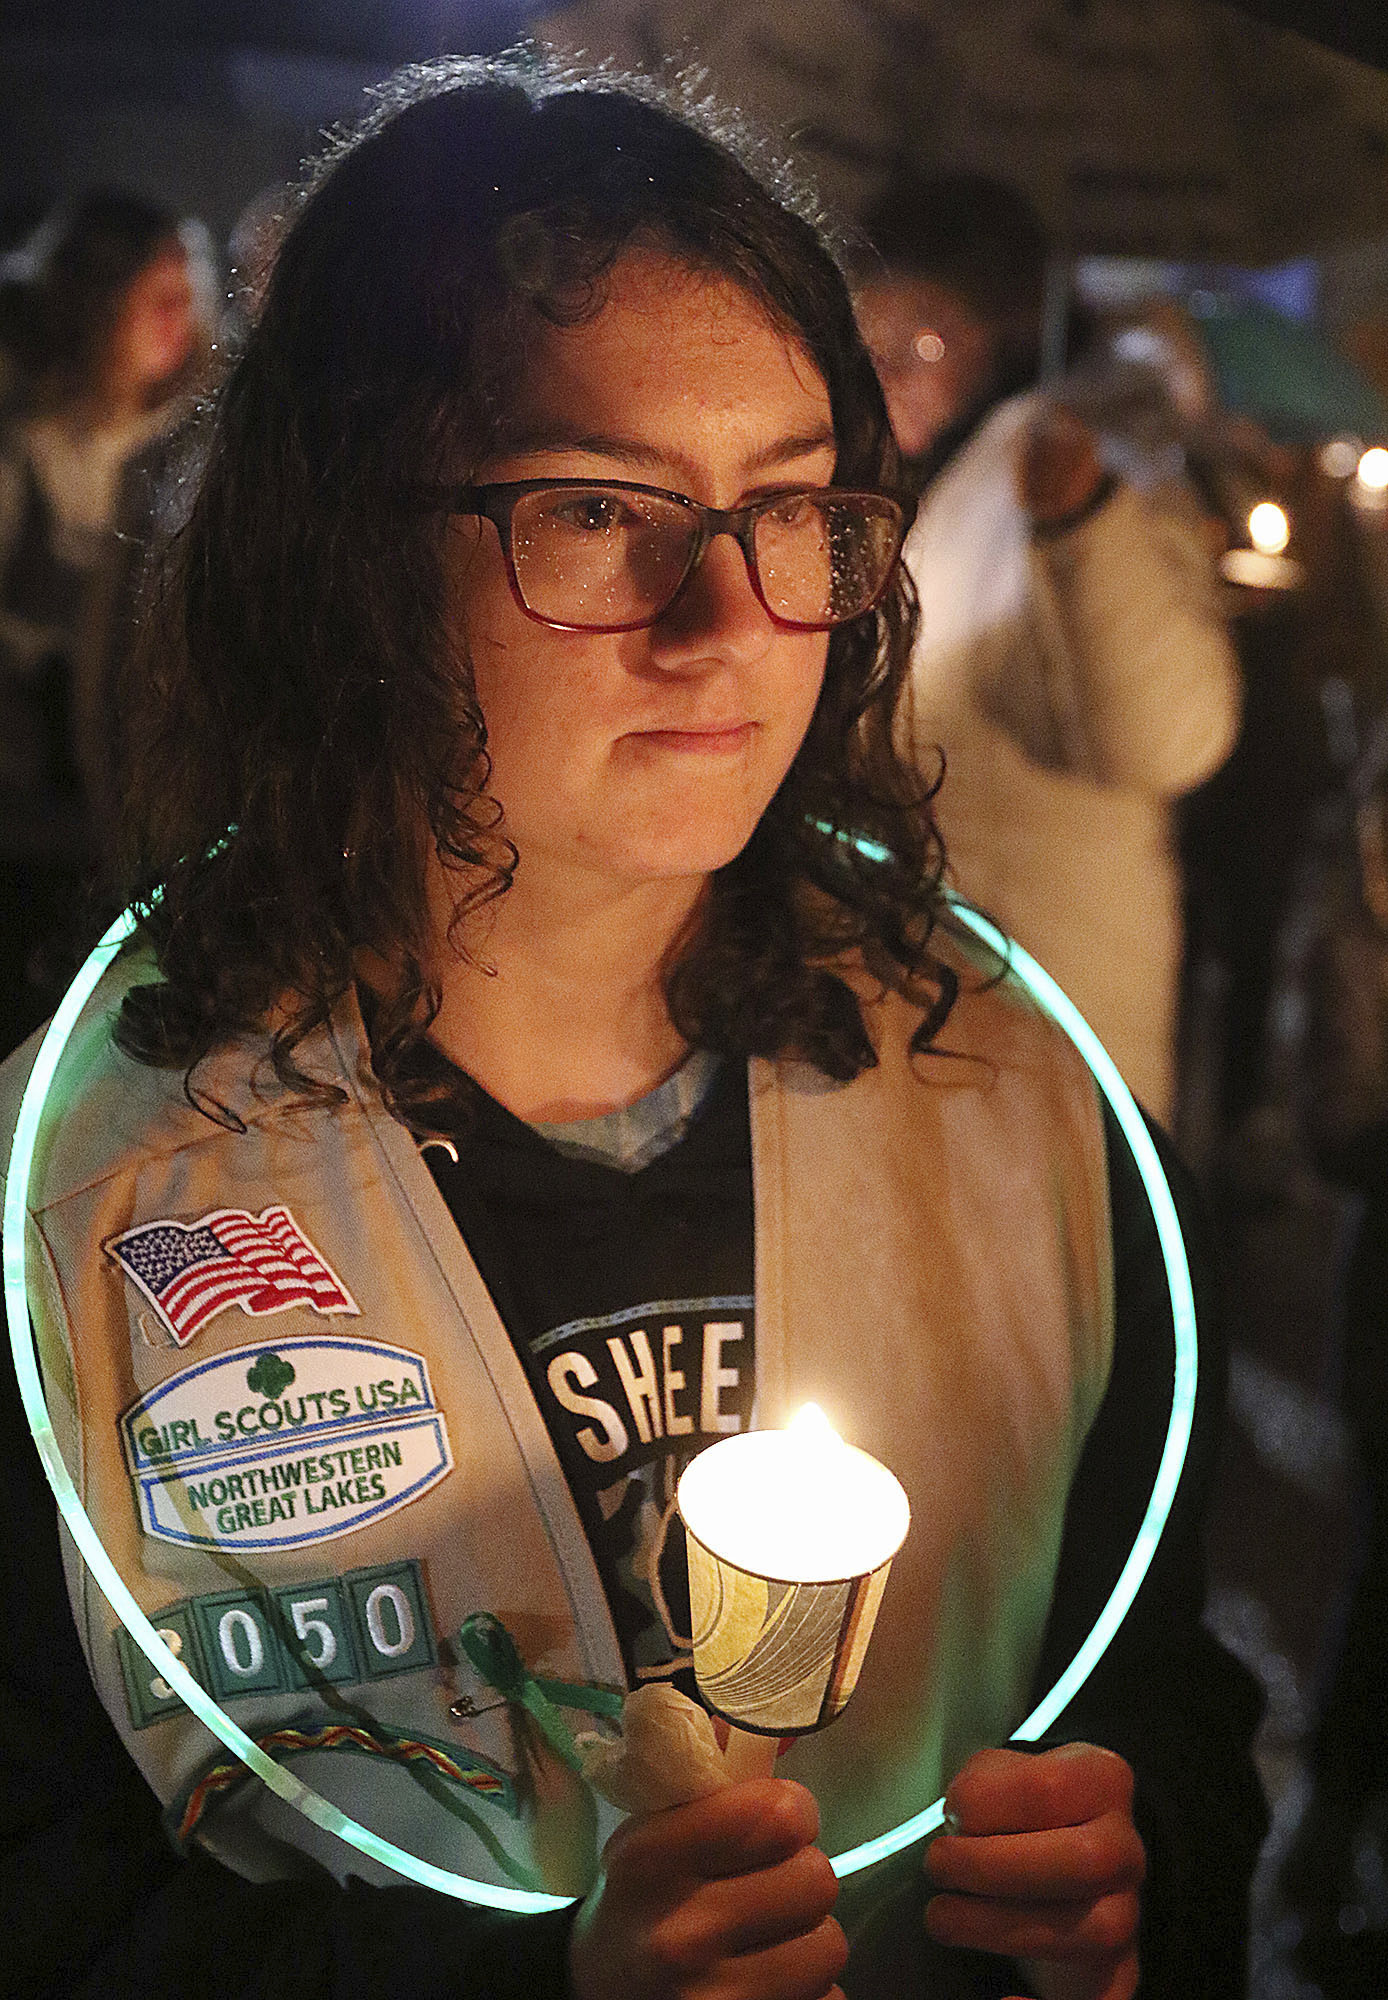 Girl Scout Jessica Lauterbach, 12, of Altoona, Wis., attends a candlelight vigil at Halmstad Elementary School in Chippewa Falls, Wis., Sunday evening, Nov. 4, 2018, in remembrance of three fourth grade Girl Scouts and a parent who died Saturday, after being struck by a pickup truck while their troop was picking up trash along a rural highway. The 21-year-old driver, Colten Treu of Chippewa Falls, sped off but later surrendered. He will be charged with four counts of homicide, Lake Hallie police Sgt. Daniel Sokup said. (Steve Kinderman/The Eau Claire Leader-Telegram via AP)